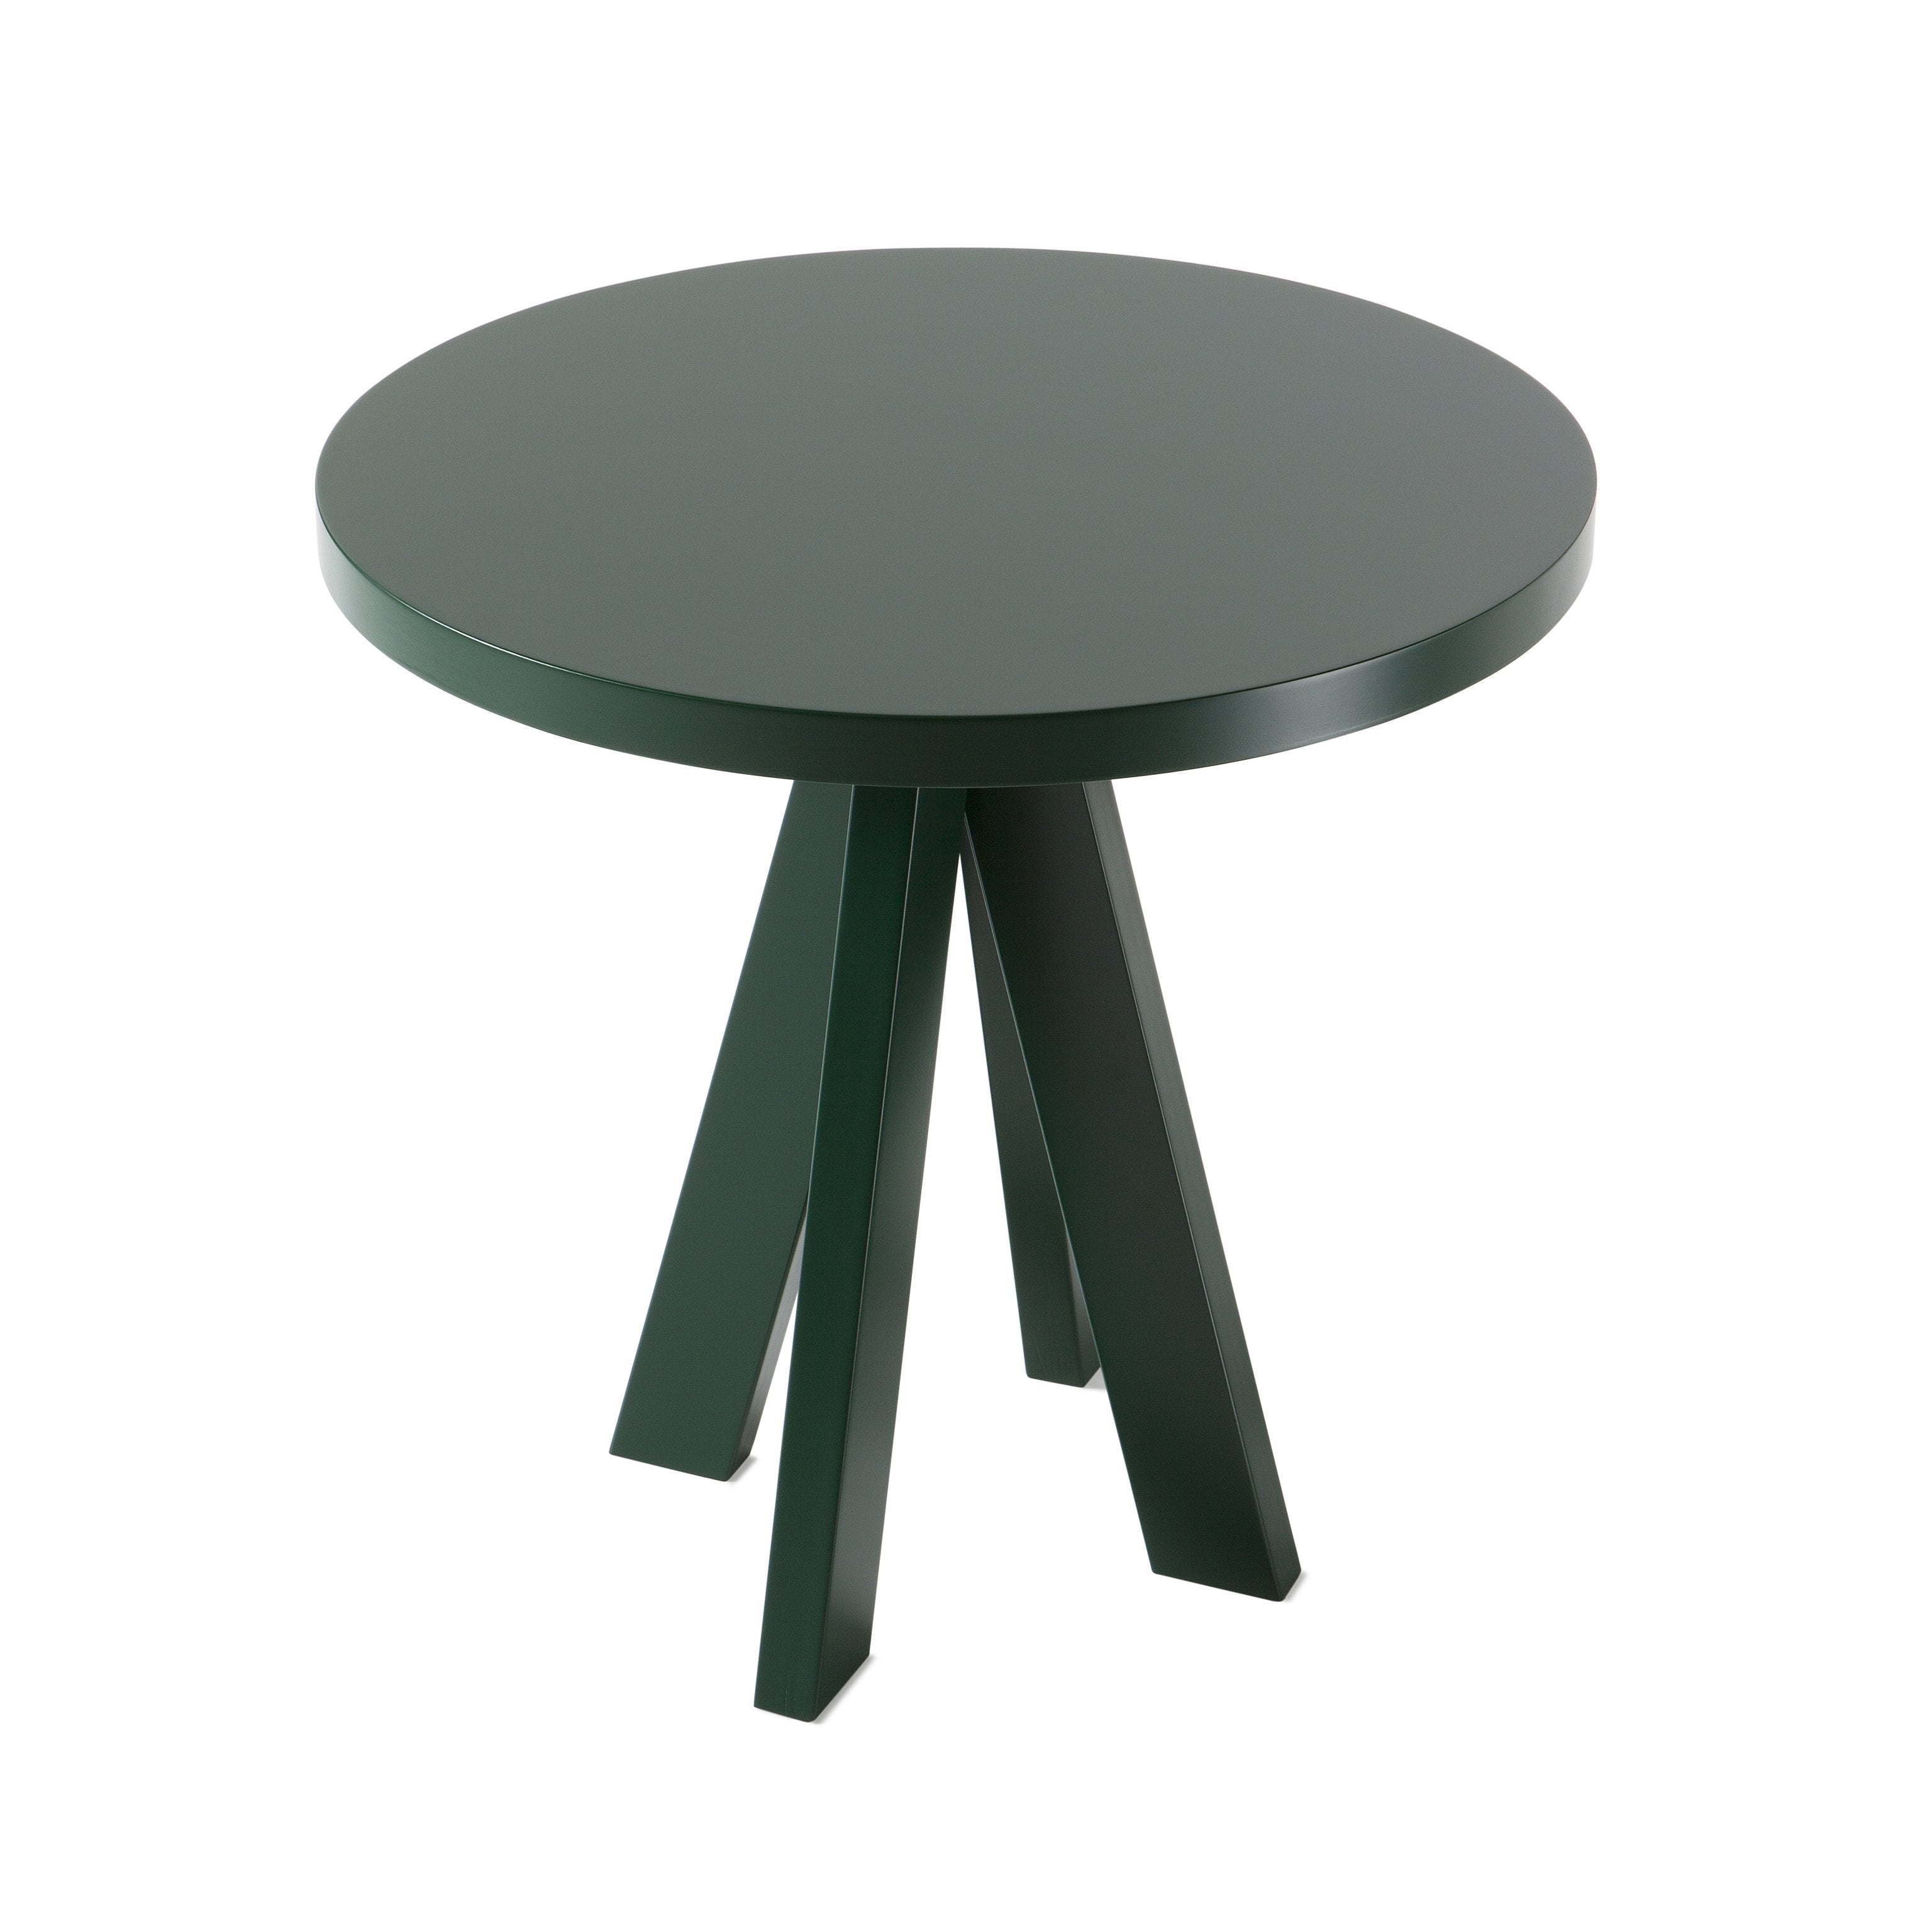 A.ngelo Coffee Table: Moss Green